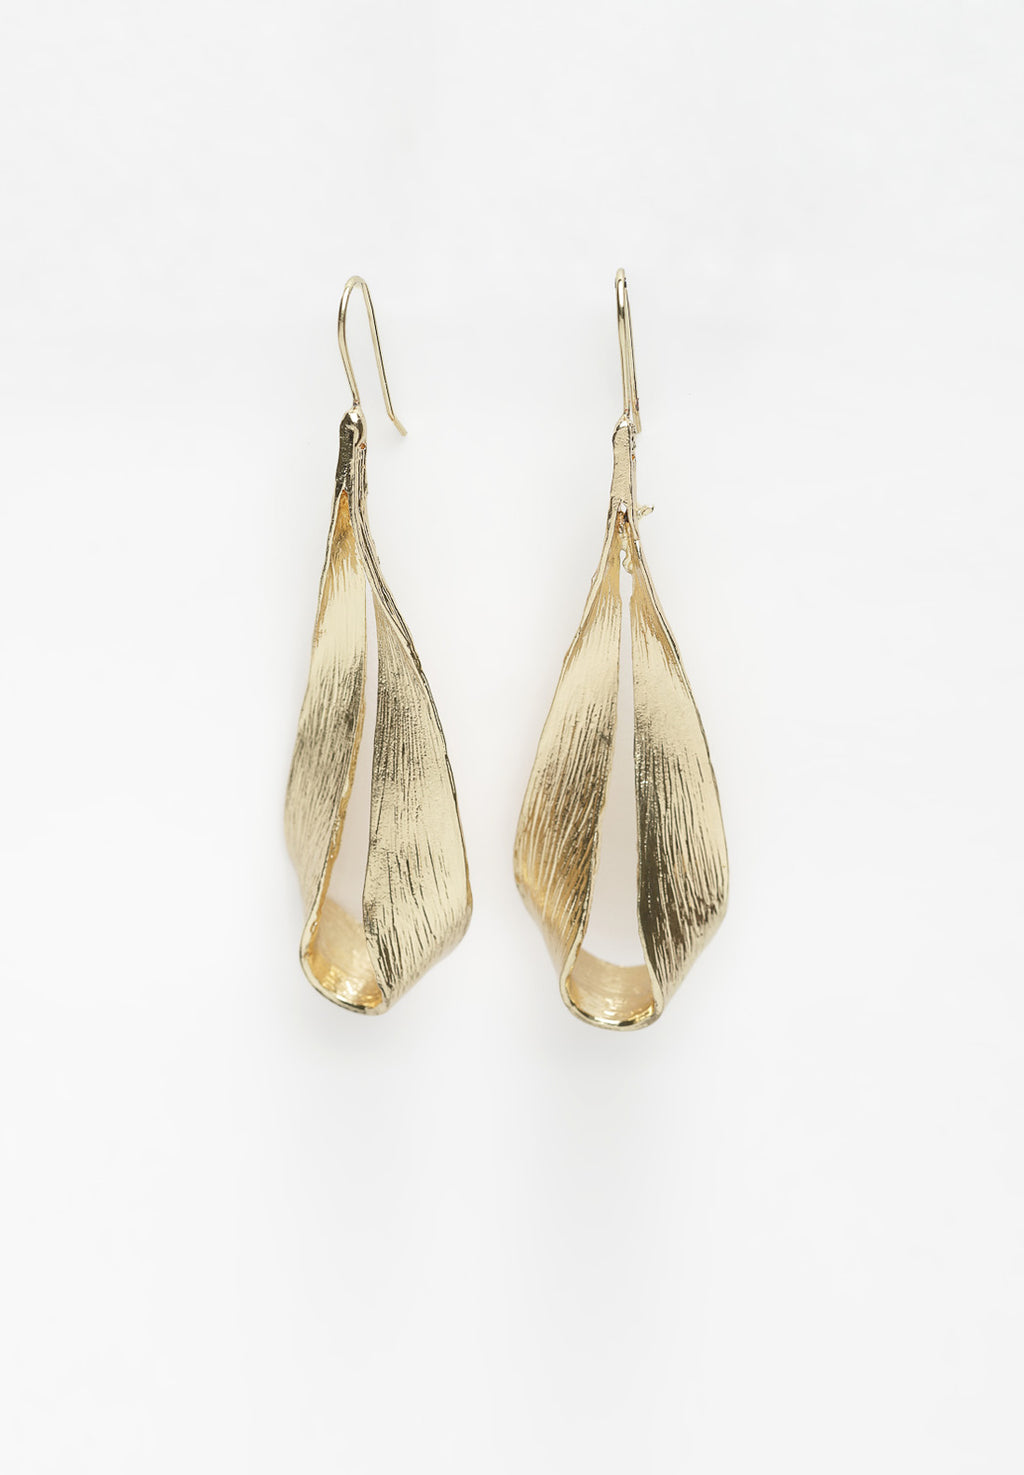 Avant-Garde ParisMetallic Gold Drop Earrings